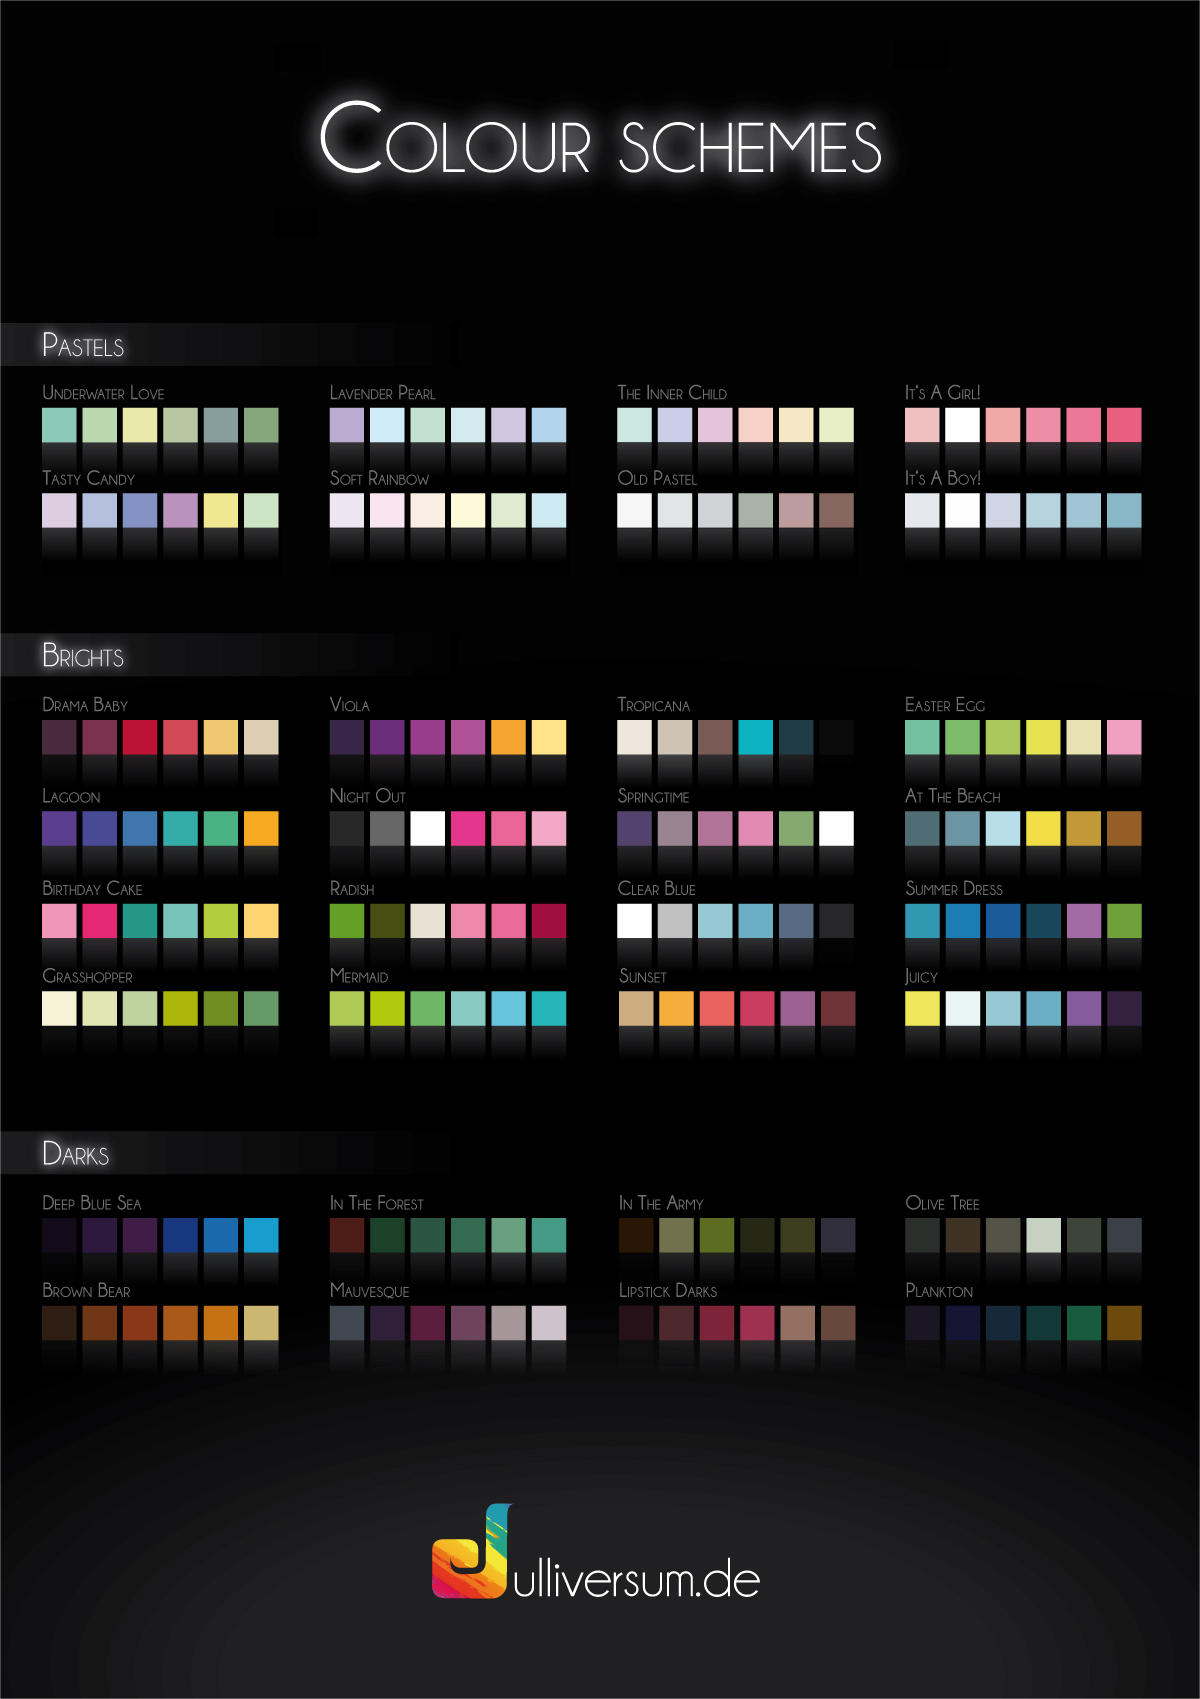 Colour Schemes by Julliversum